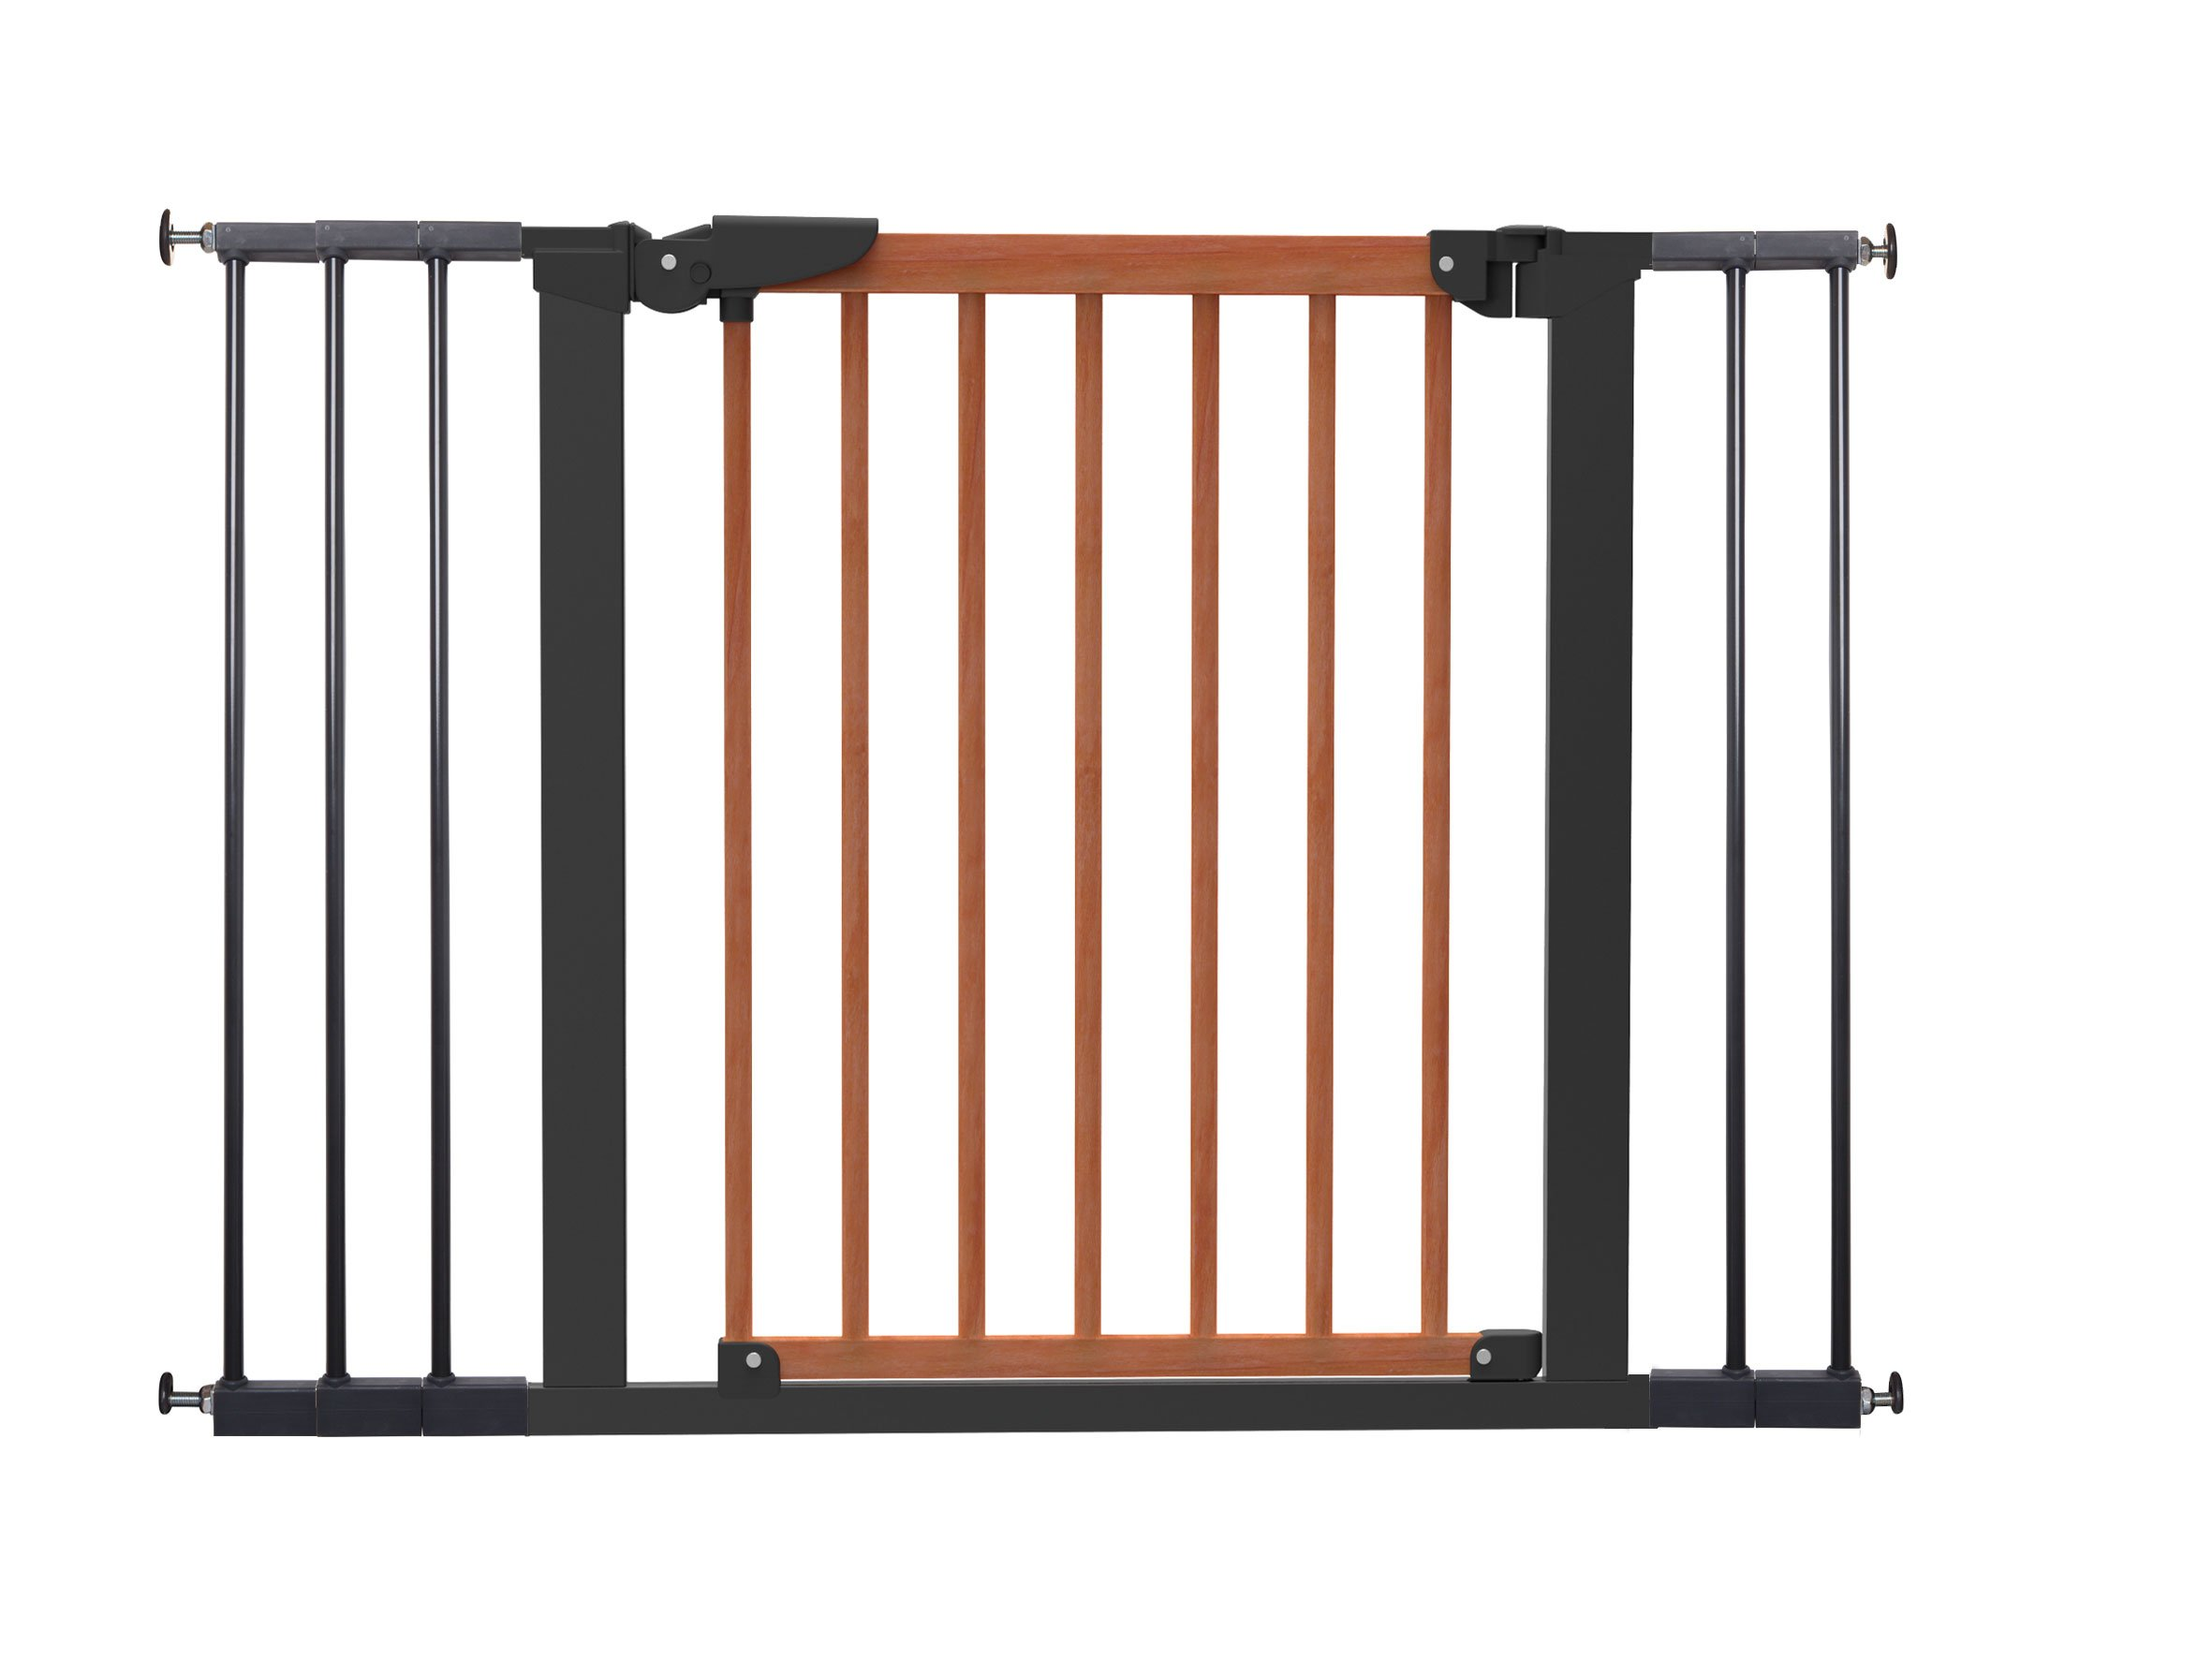 BabyDan Pressure Avantgarde Gate Hanger for door/Staircase 71,3-110,6cm Cherry/Black  Simple to build and comes complete with all fixings Made of metal and moved by a pressure fixing system Includes stop pins for mounting at the top of stairs 1